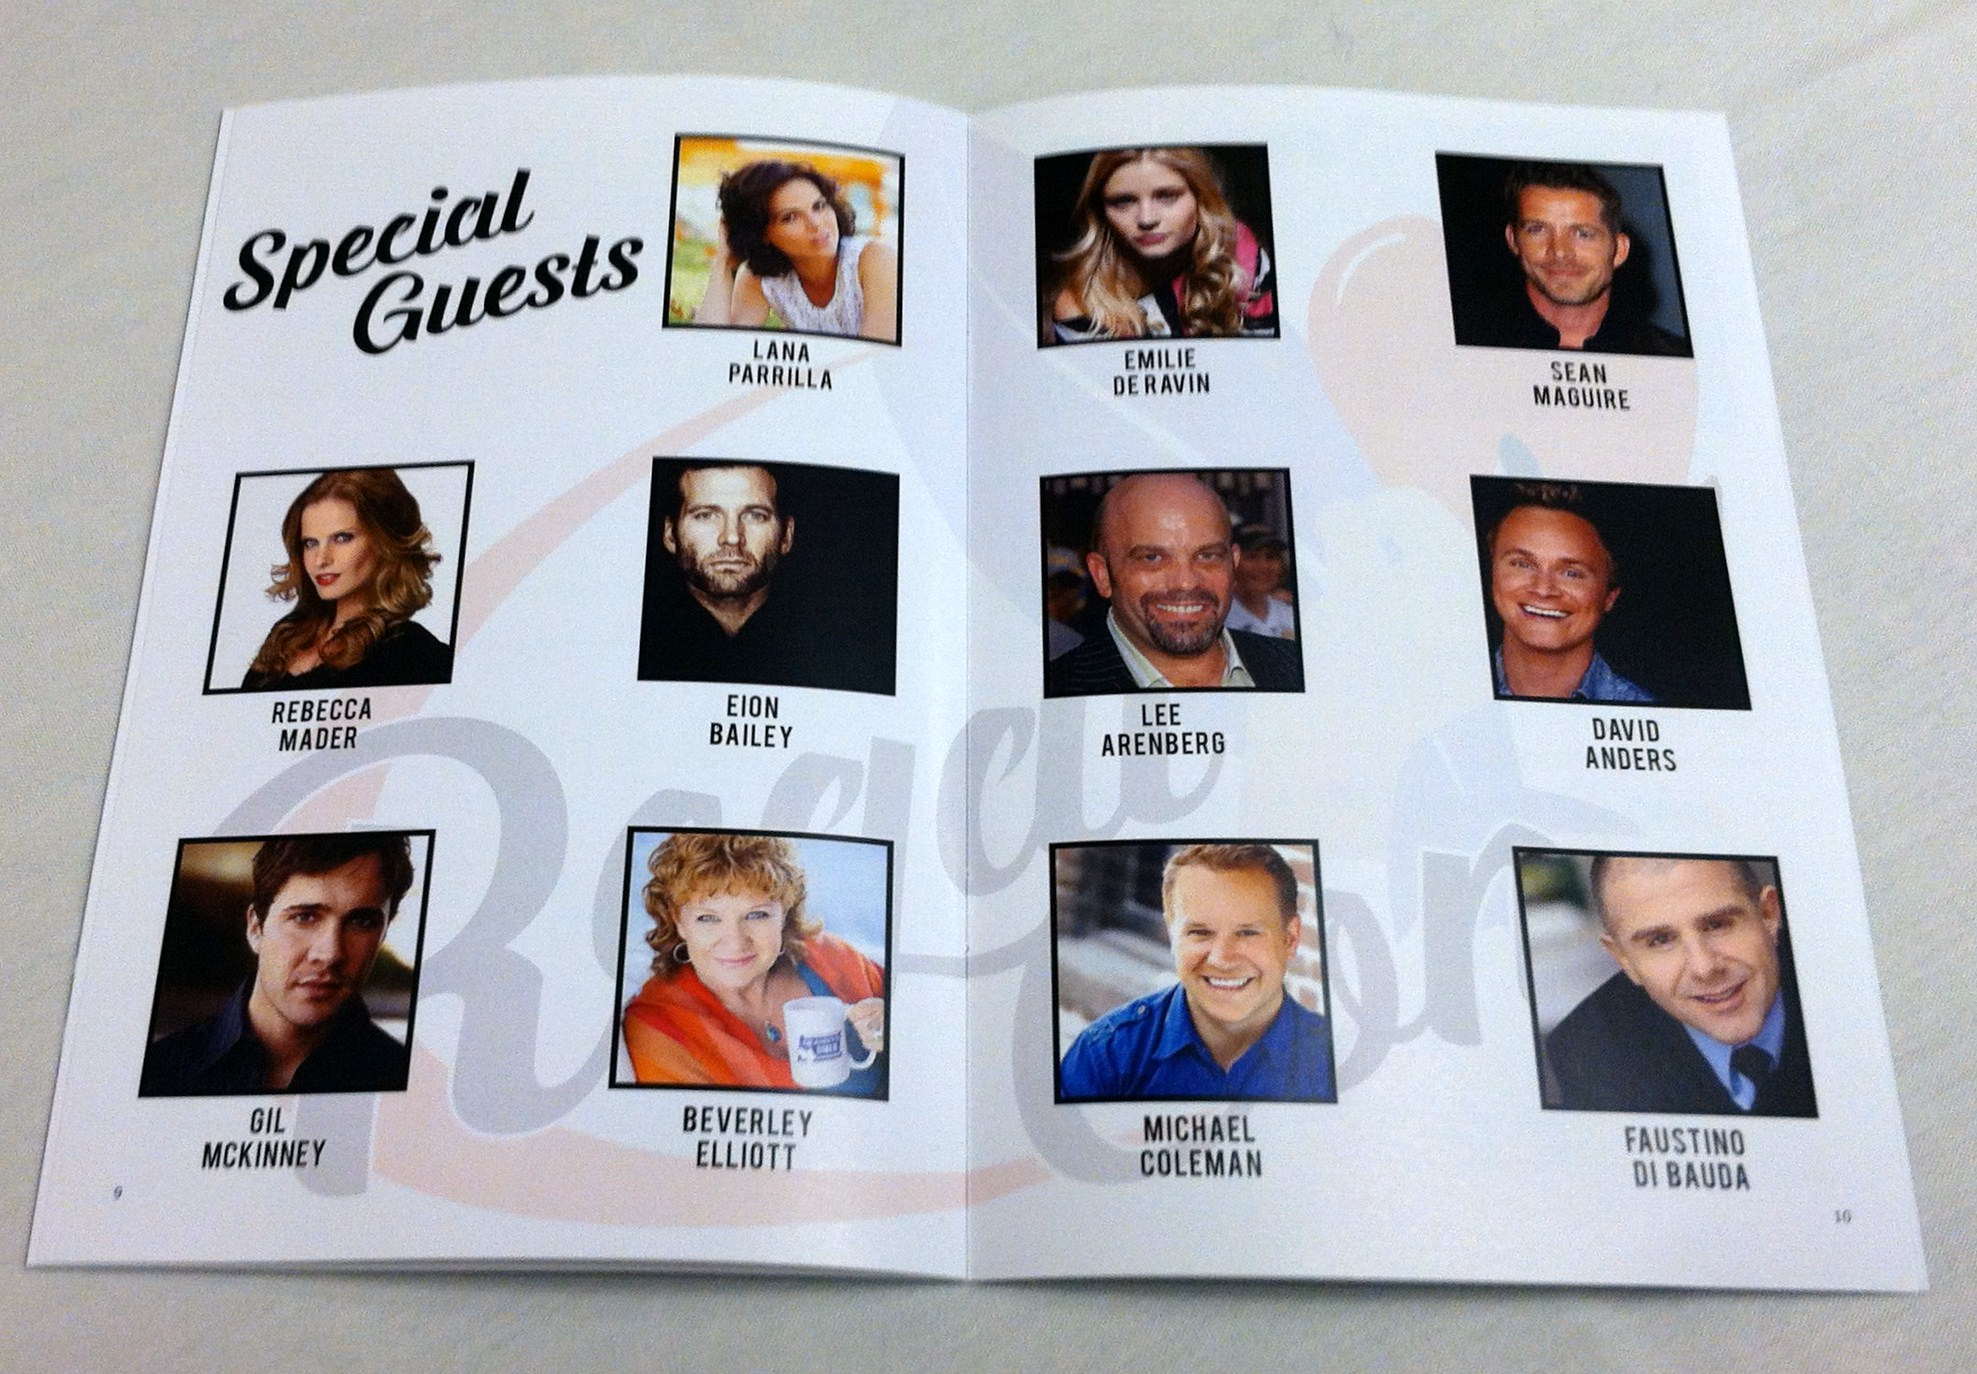 Regal Con 2015 Special Guests from the Program